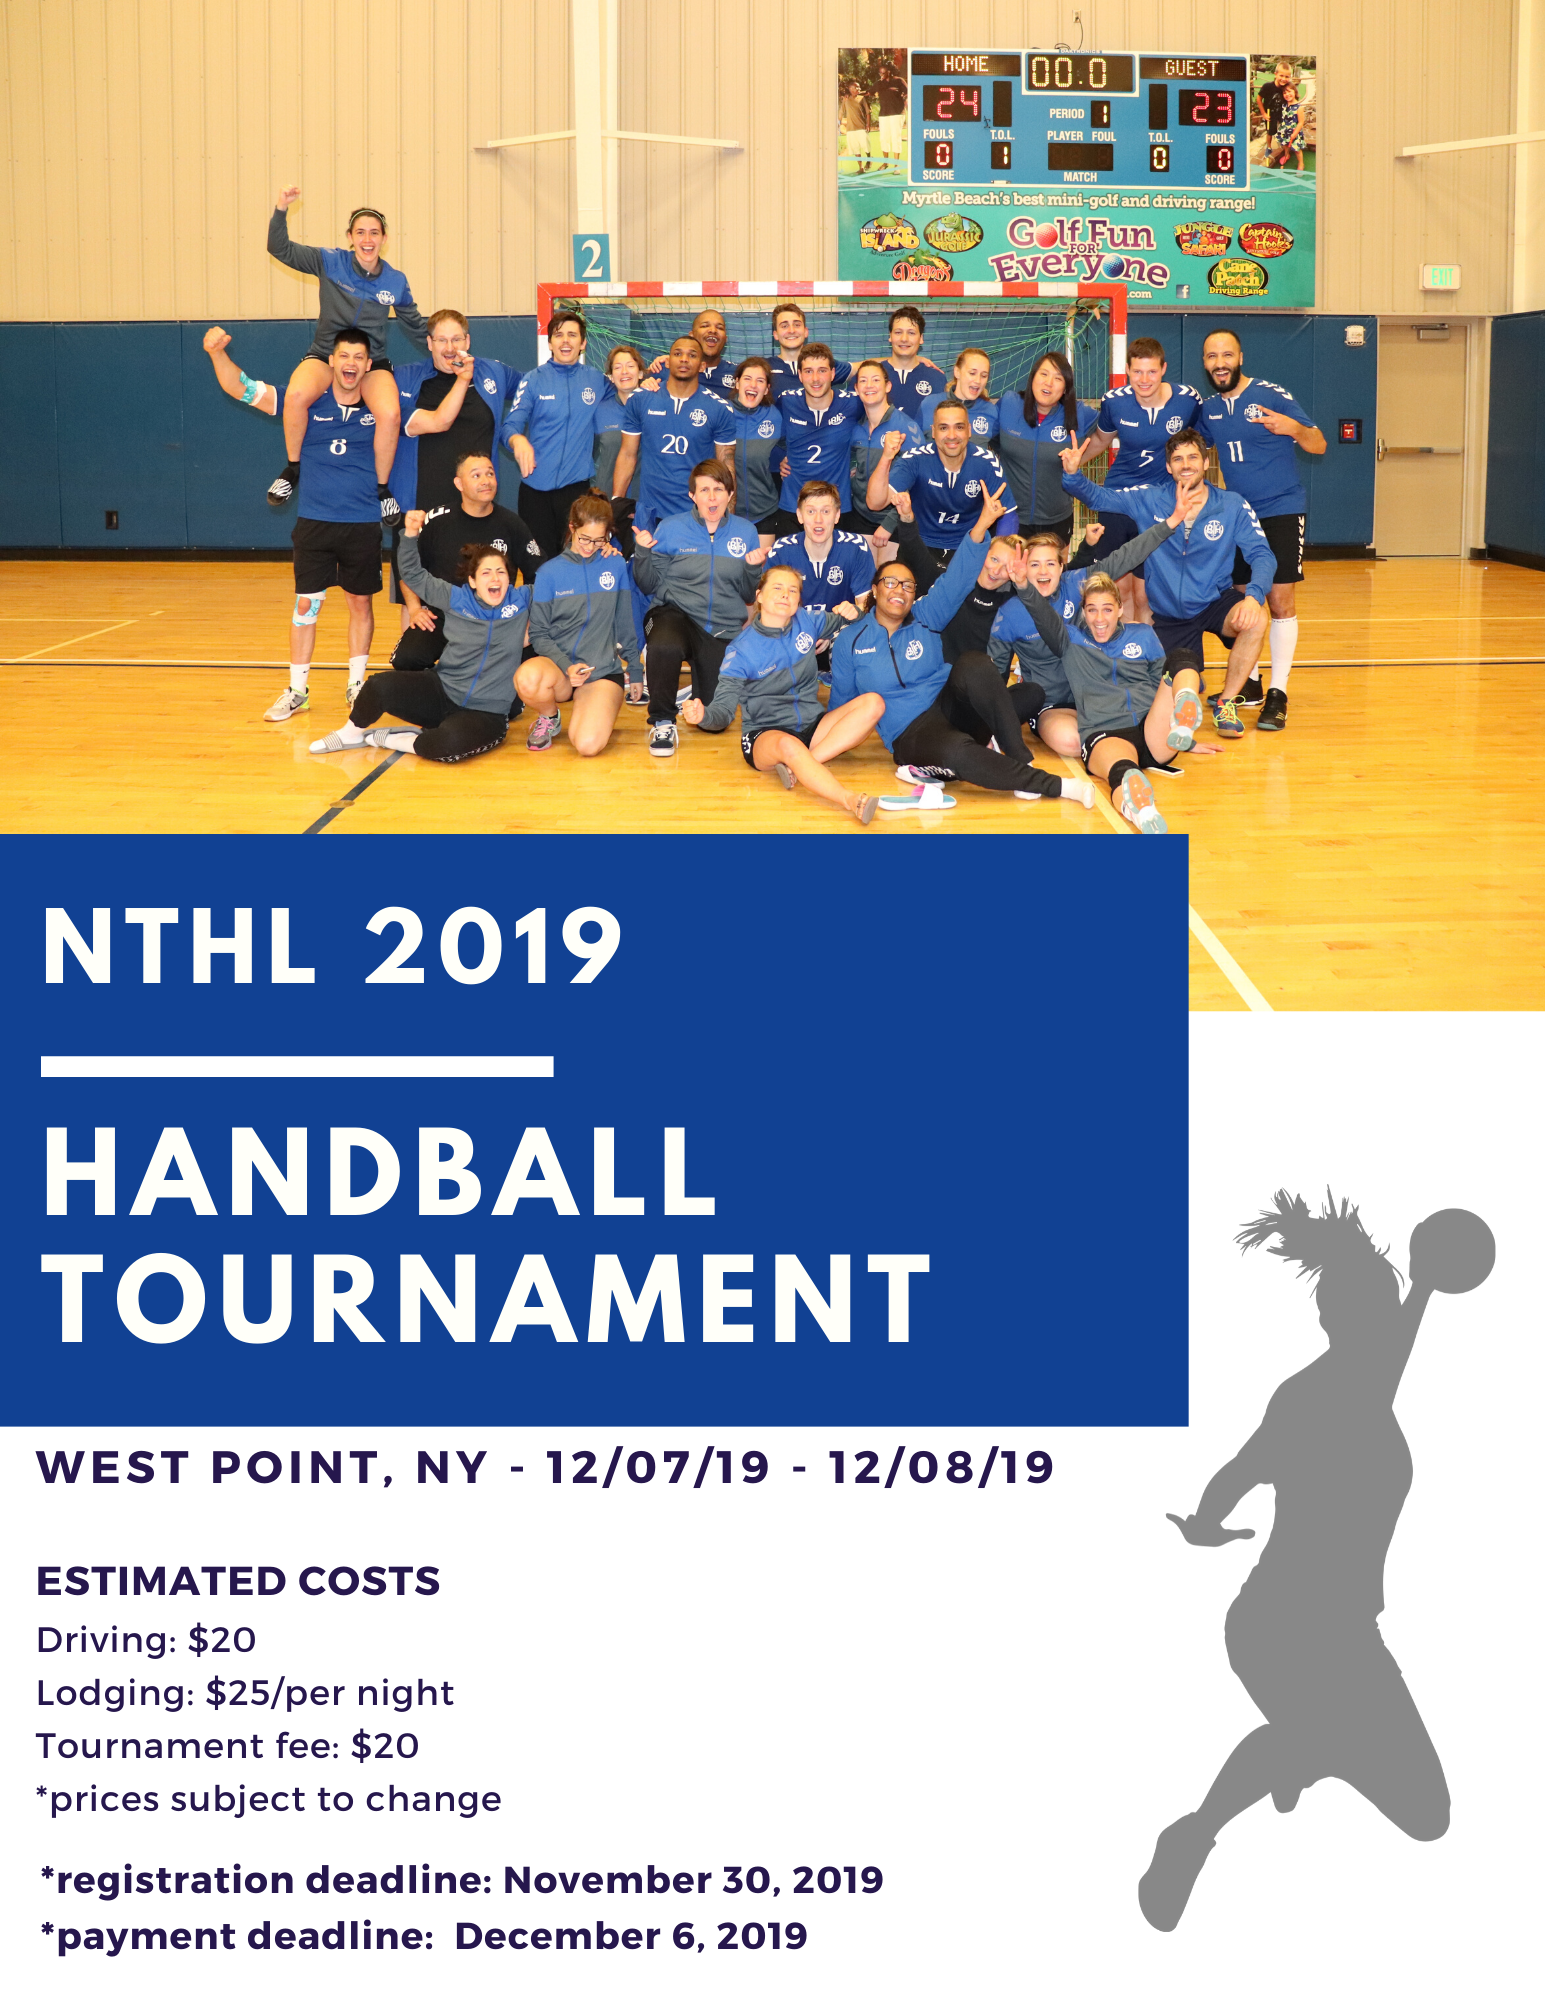 Copy of handball tournament